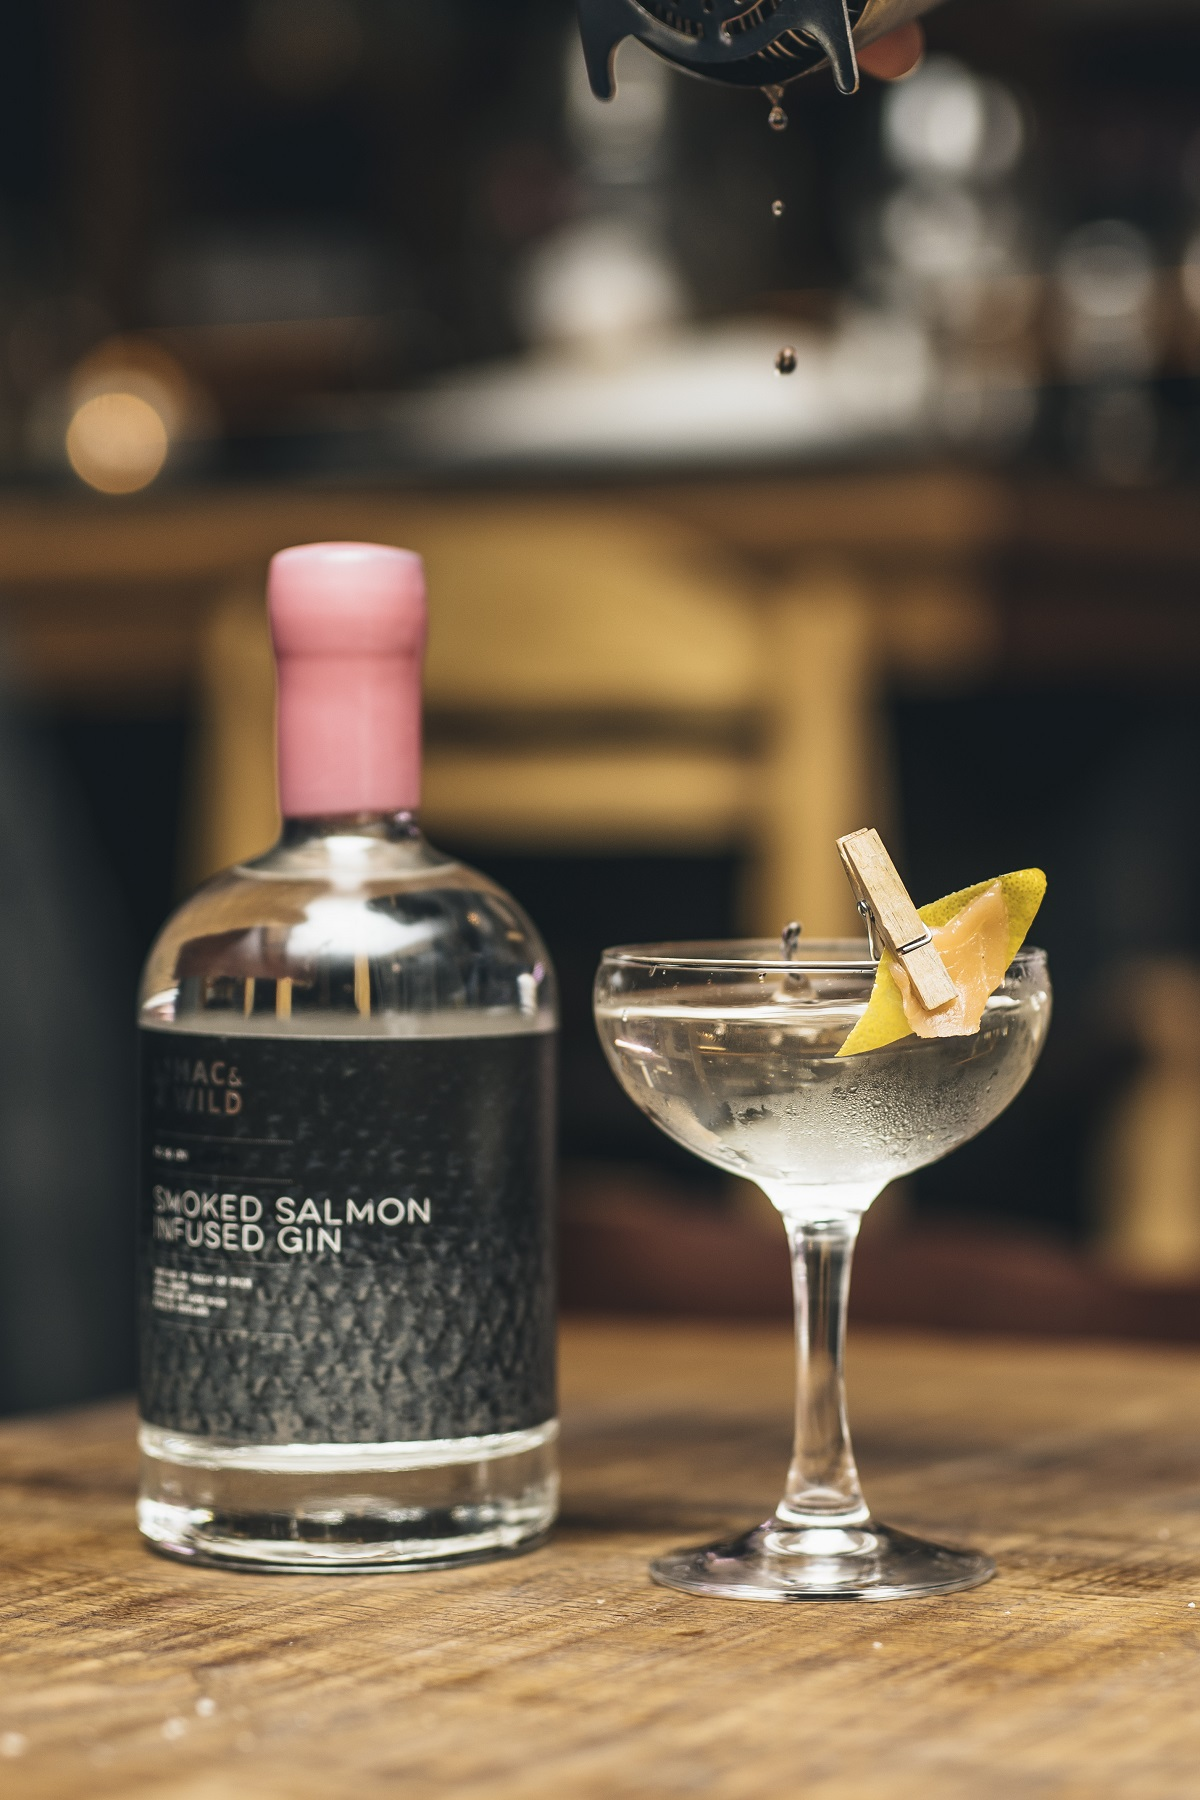 World Gin Day - Where To Celebrate: How About Smoked Salmon Infused Gin at Mac & Wild?